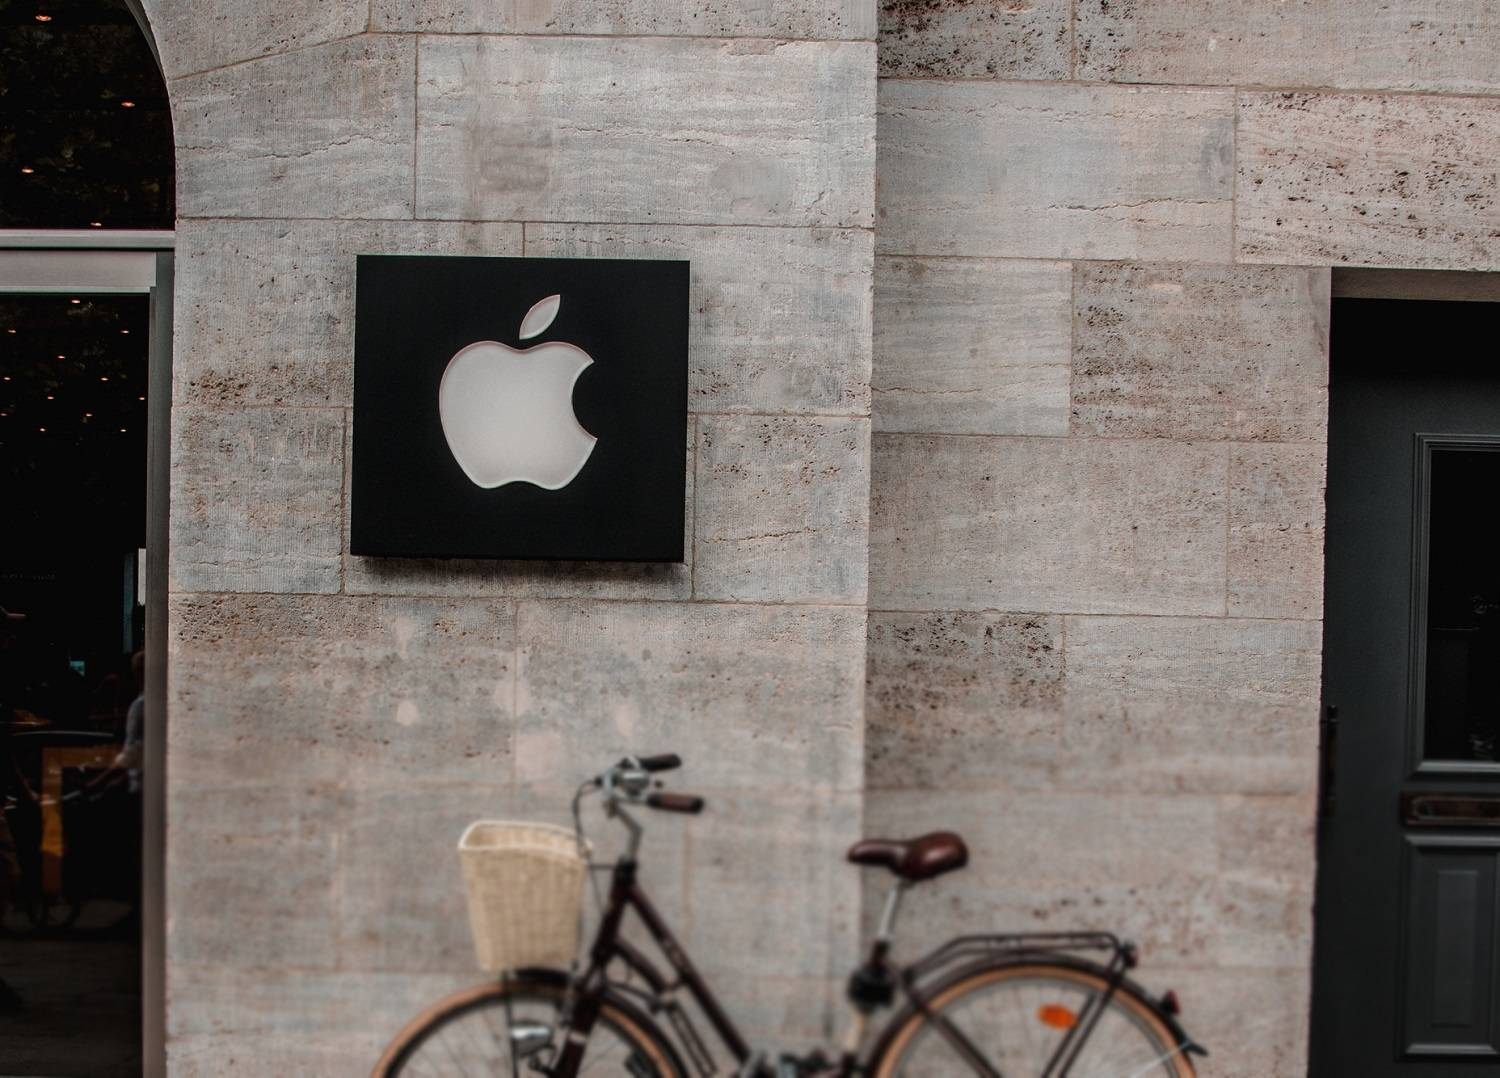 Apple is No More The Most Innovative Company According To Latest